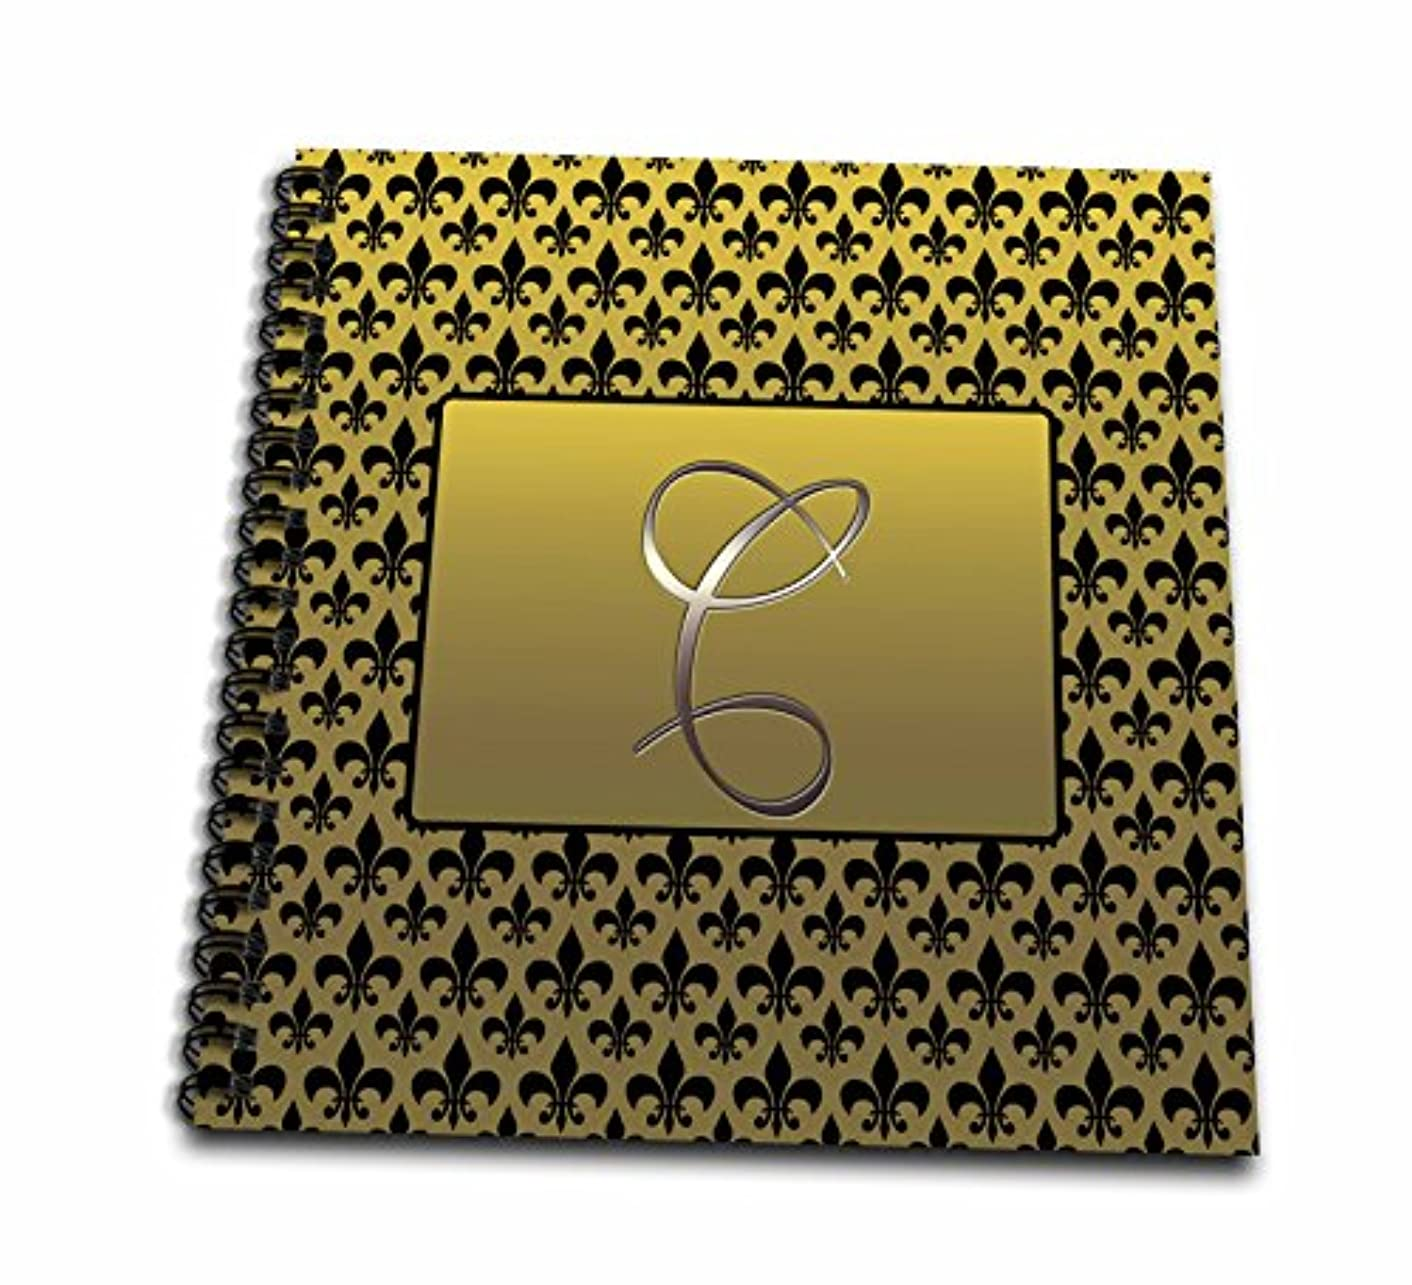 3dRose db_36081_1 Elegant Letter C Embossed in Gold Frame Over a Black Fleur-De-Lis Pattern on a Gold Background-Drawing Book, 8 by 8-Inch